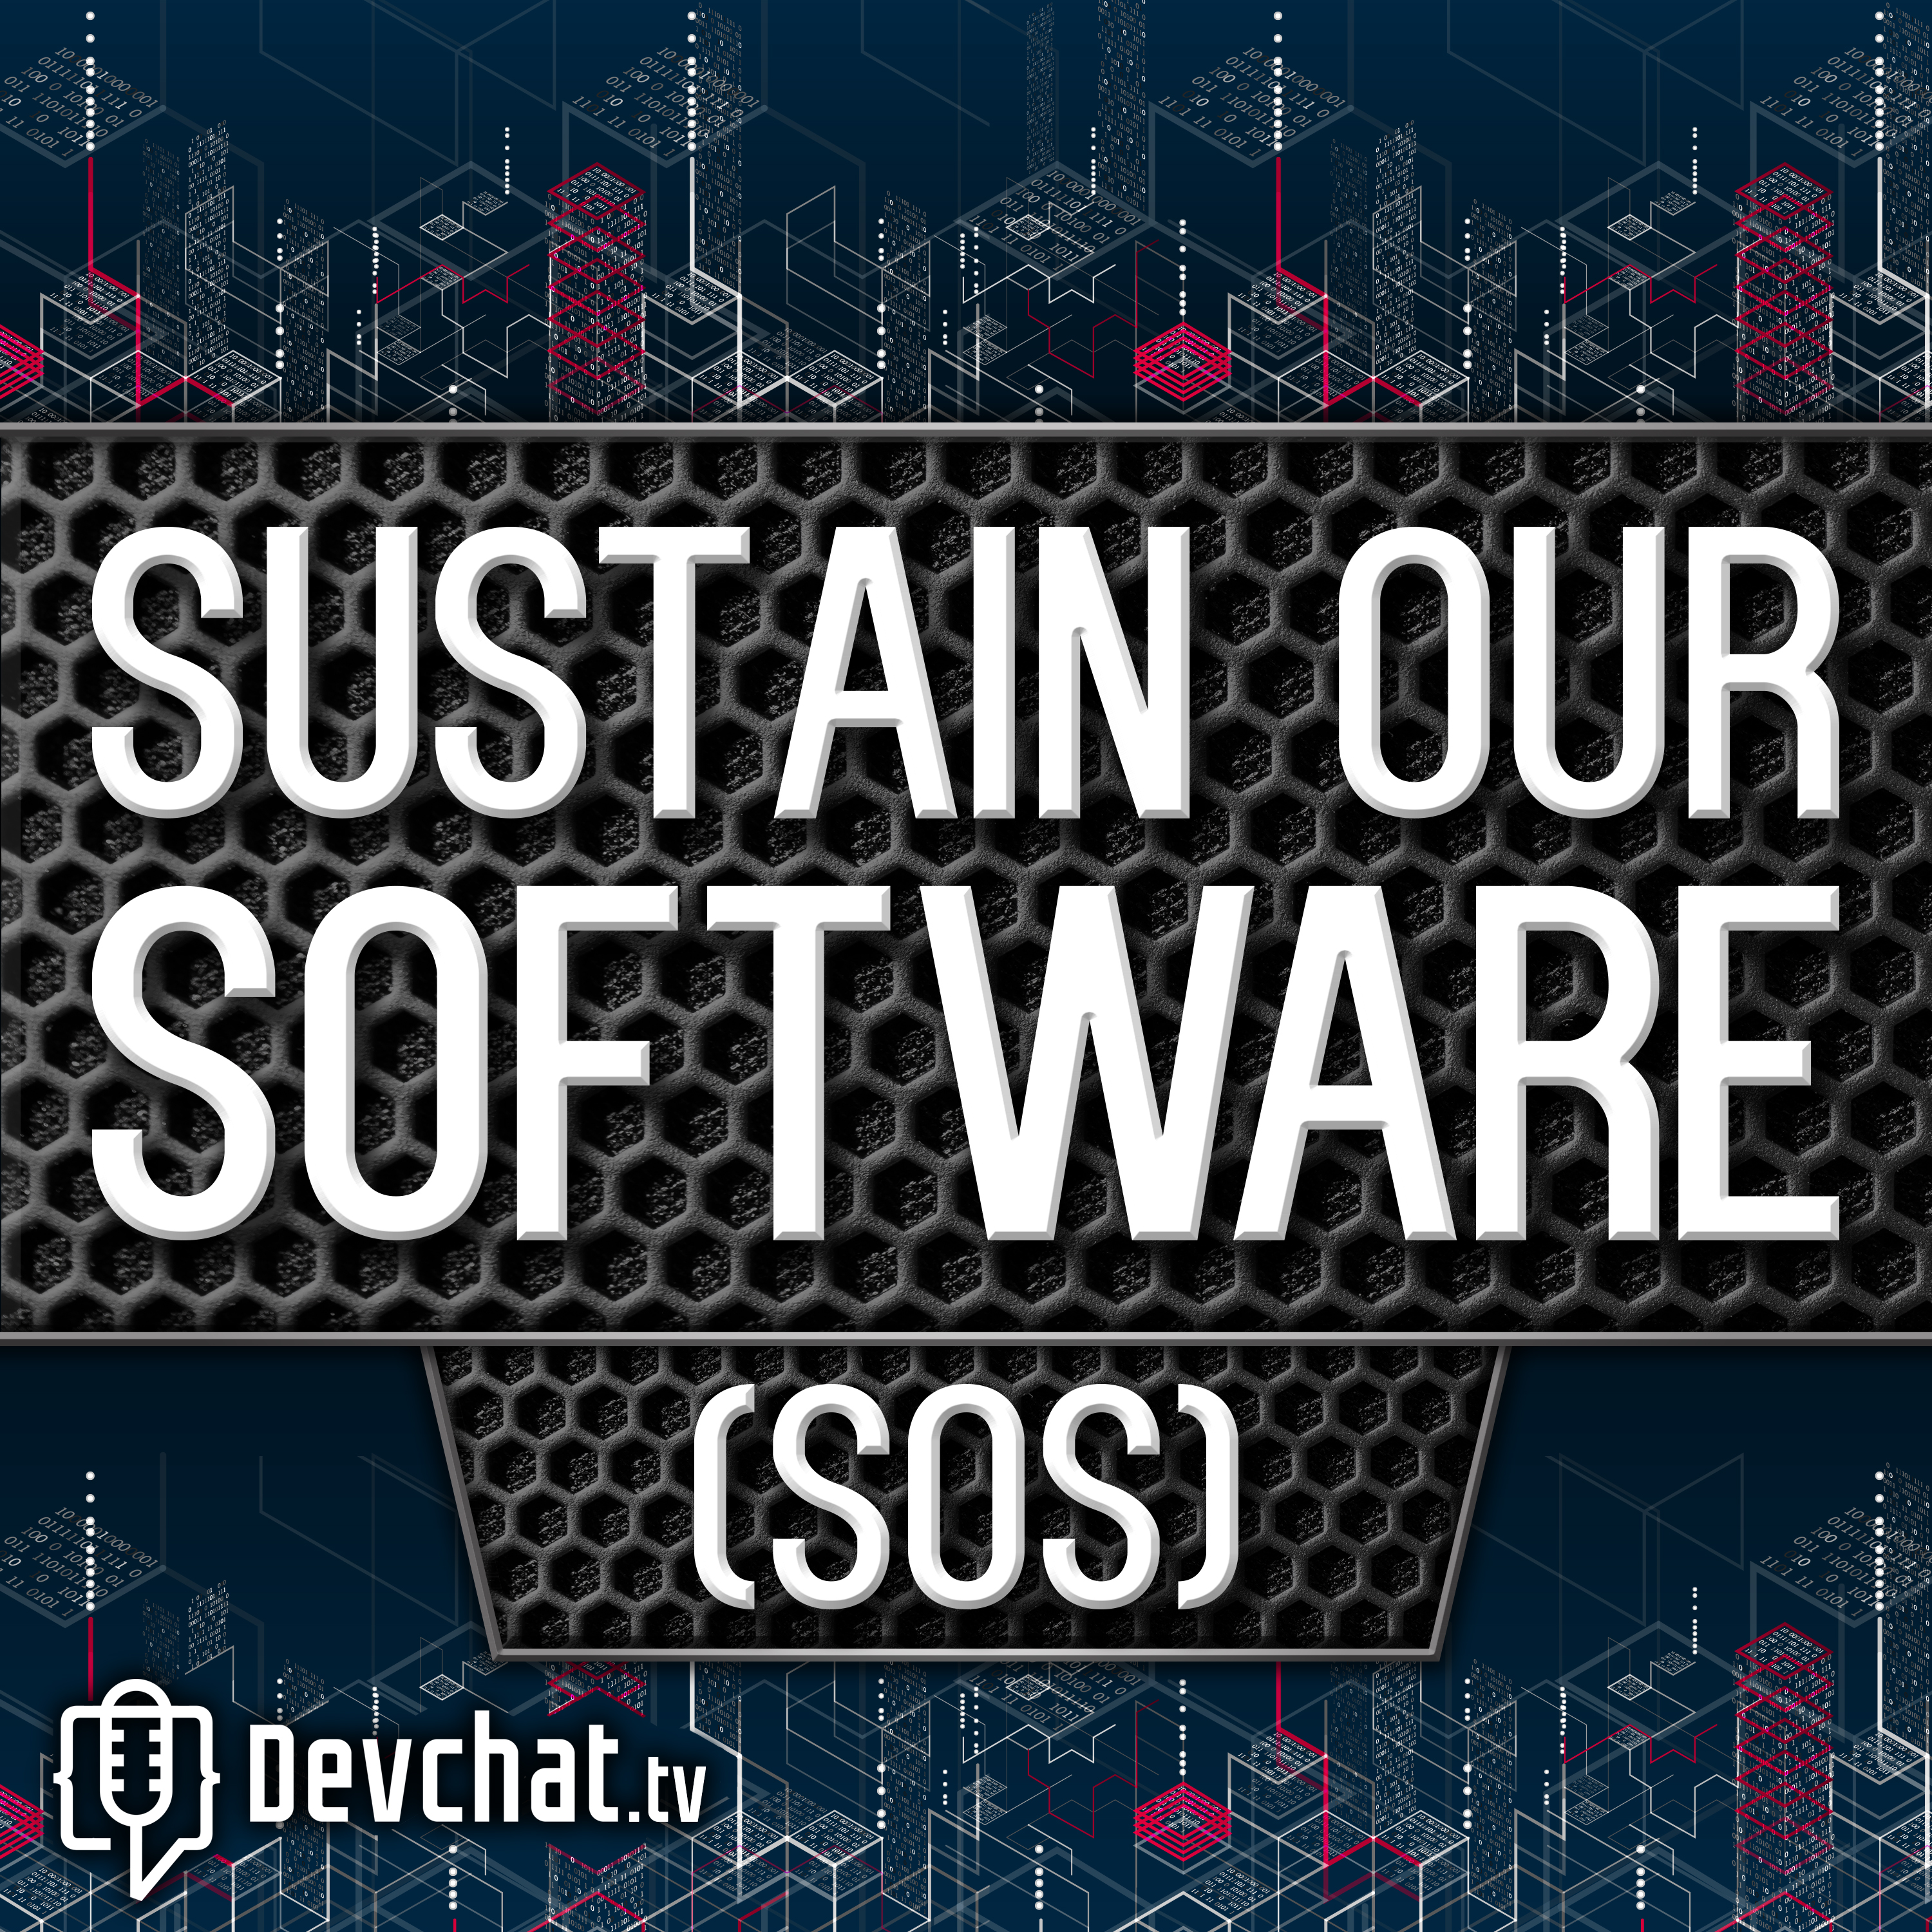 SOS 013: Elevating Musicians Through Open Source with Robert Kaye